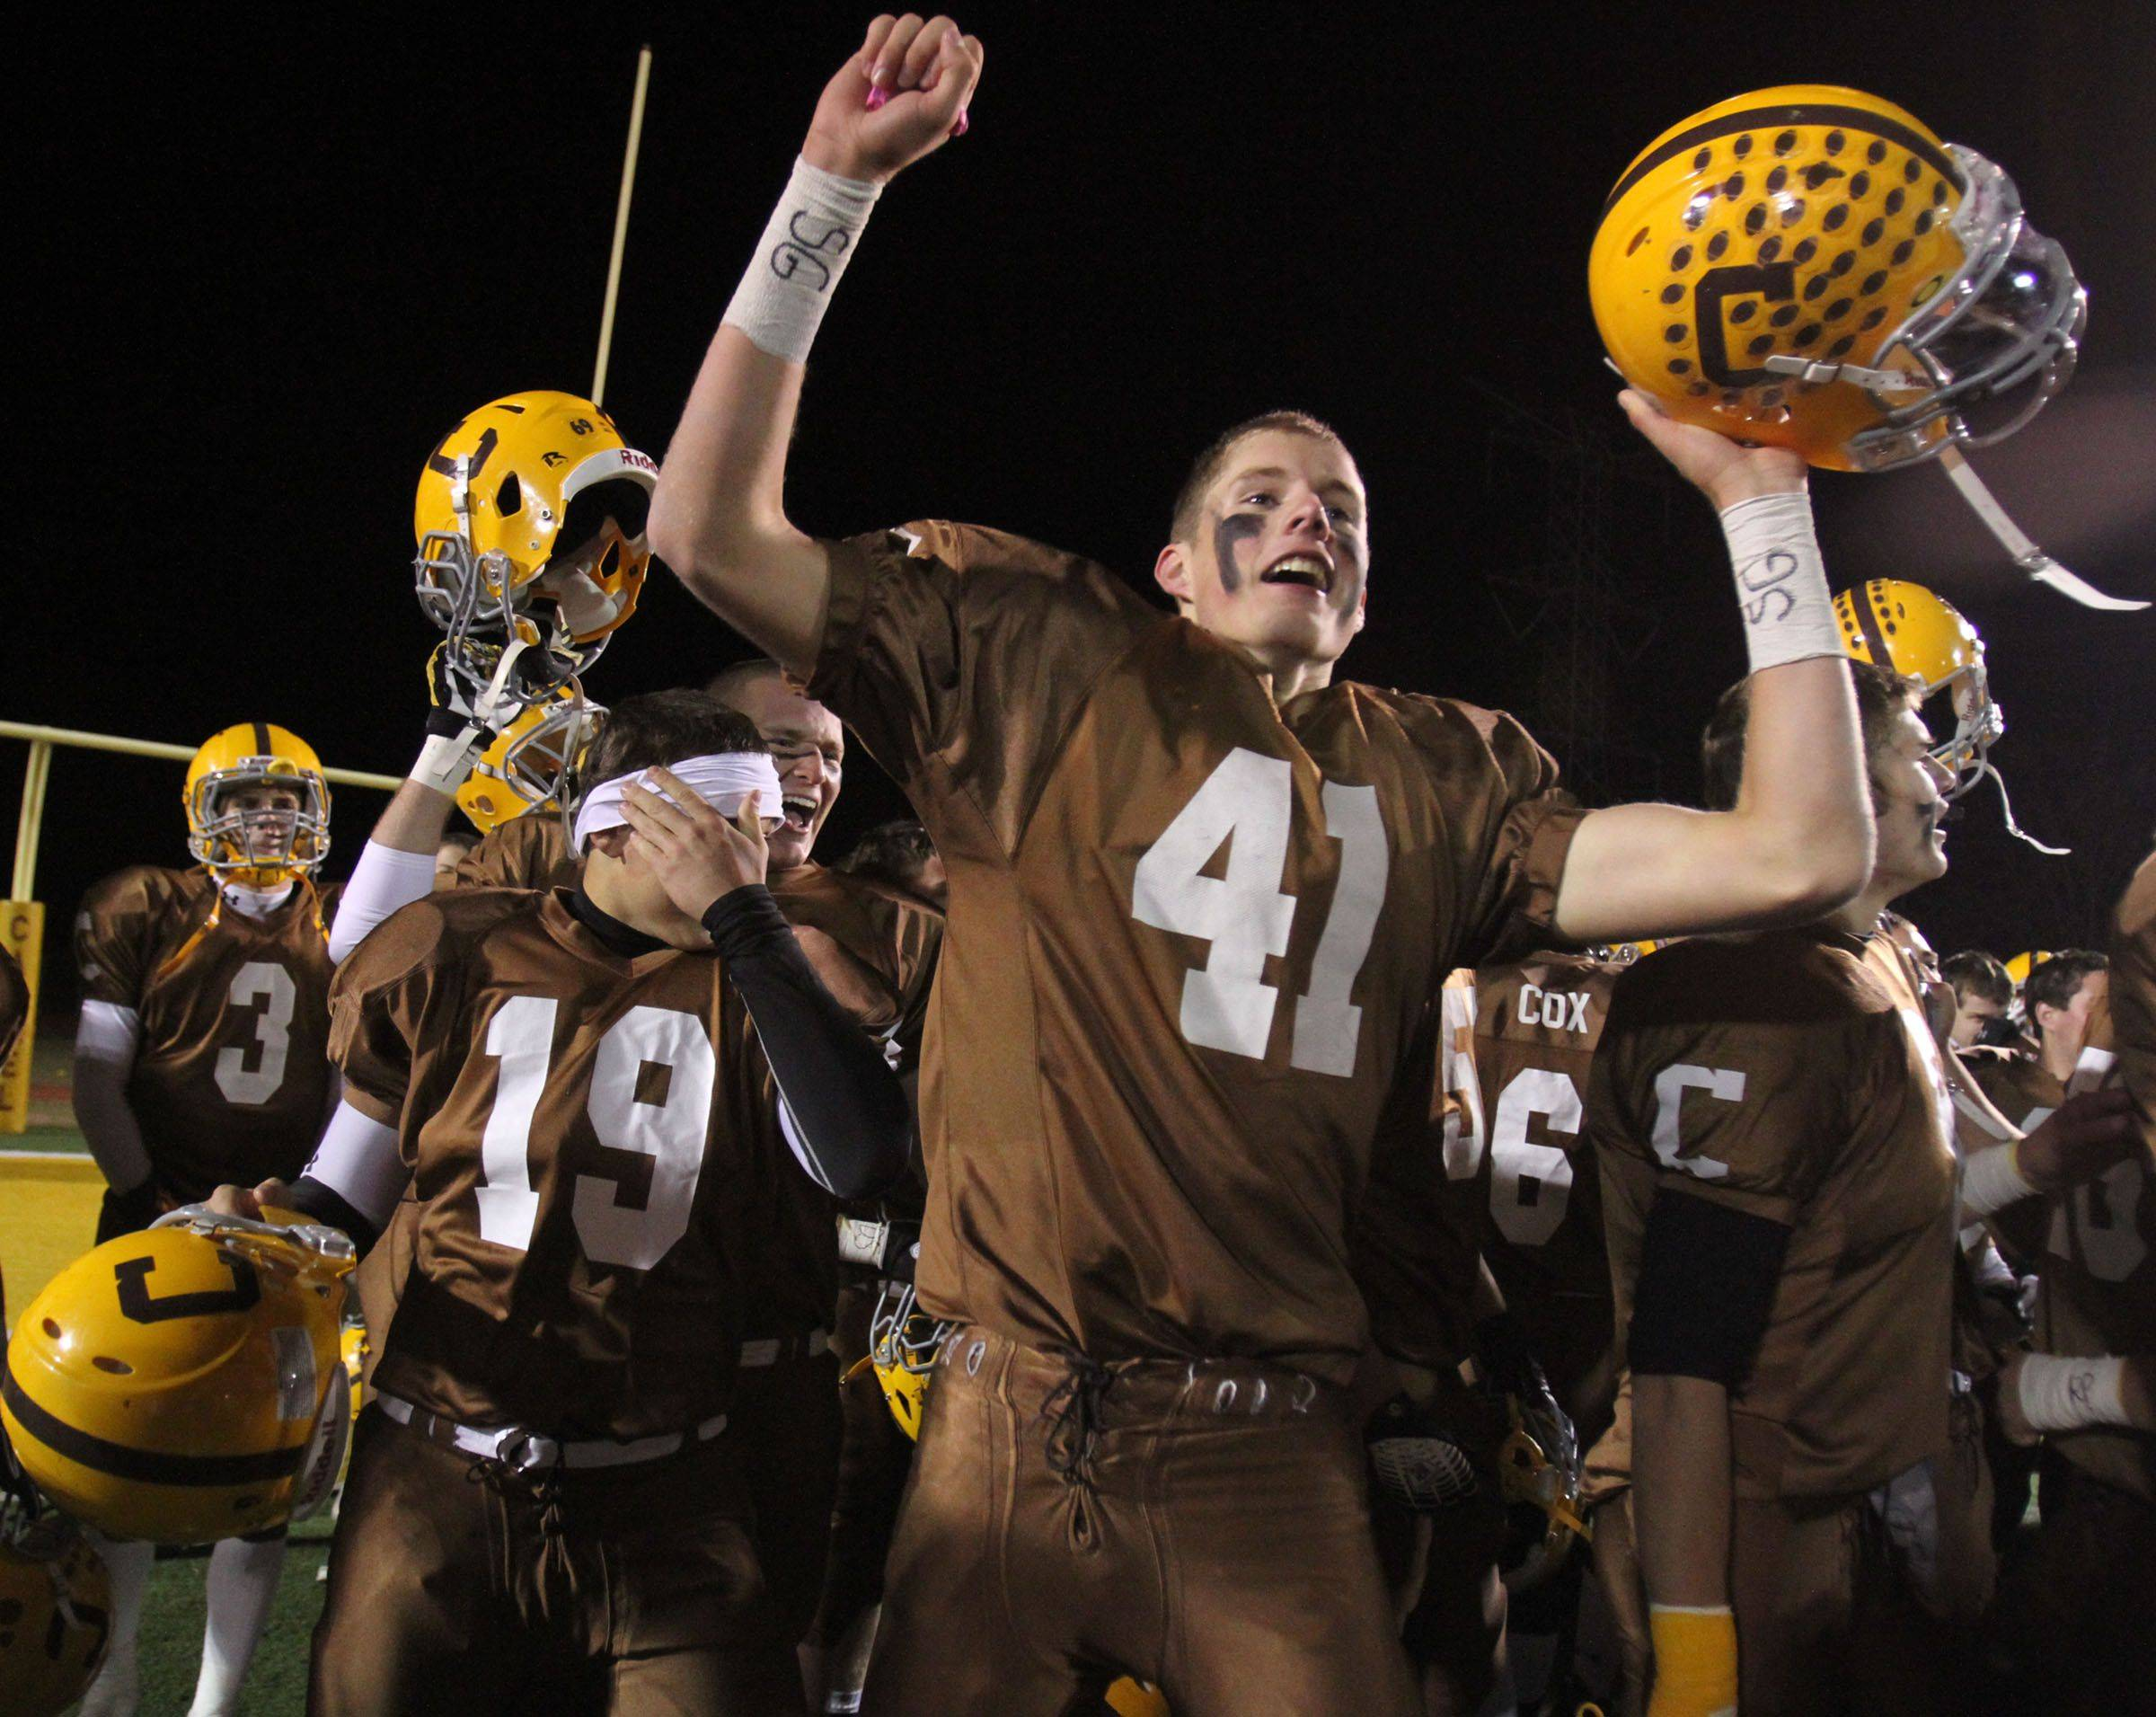 Carmel's Michael Fitzgibbons celebrates winning 55-7 over Elgin in round one of Class 7A state playoffs at Carmel in Mundelein on Friday, October 29.